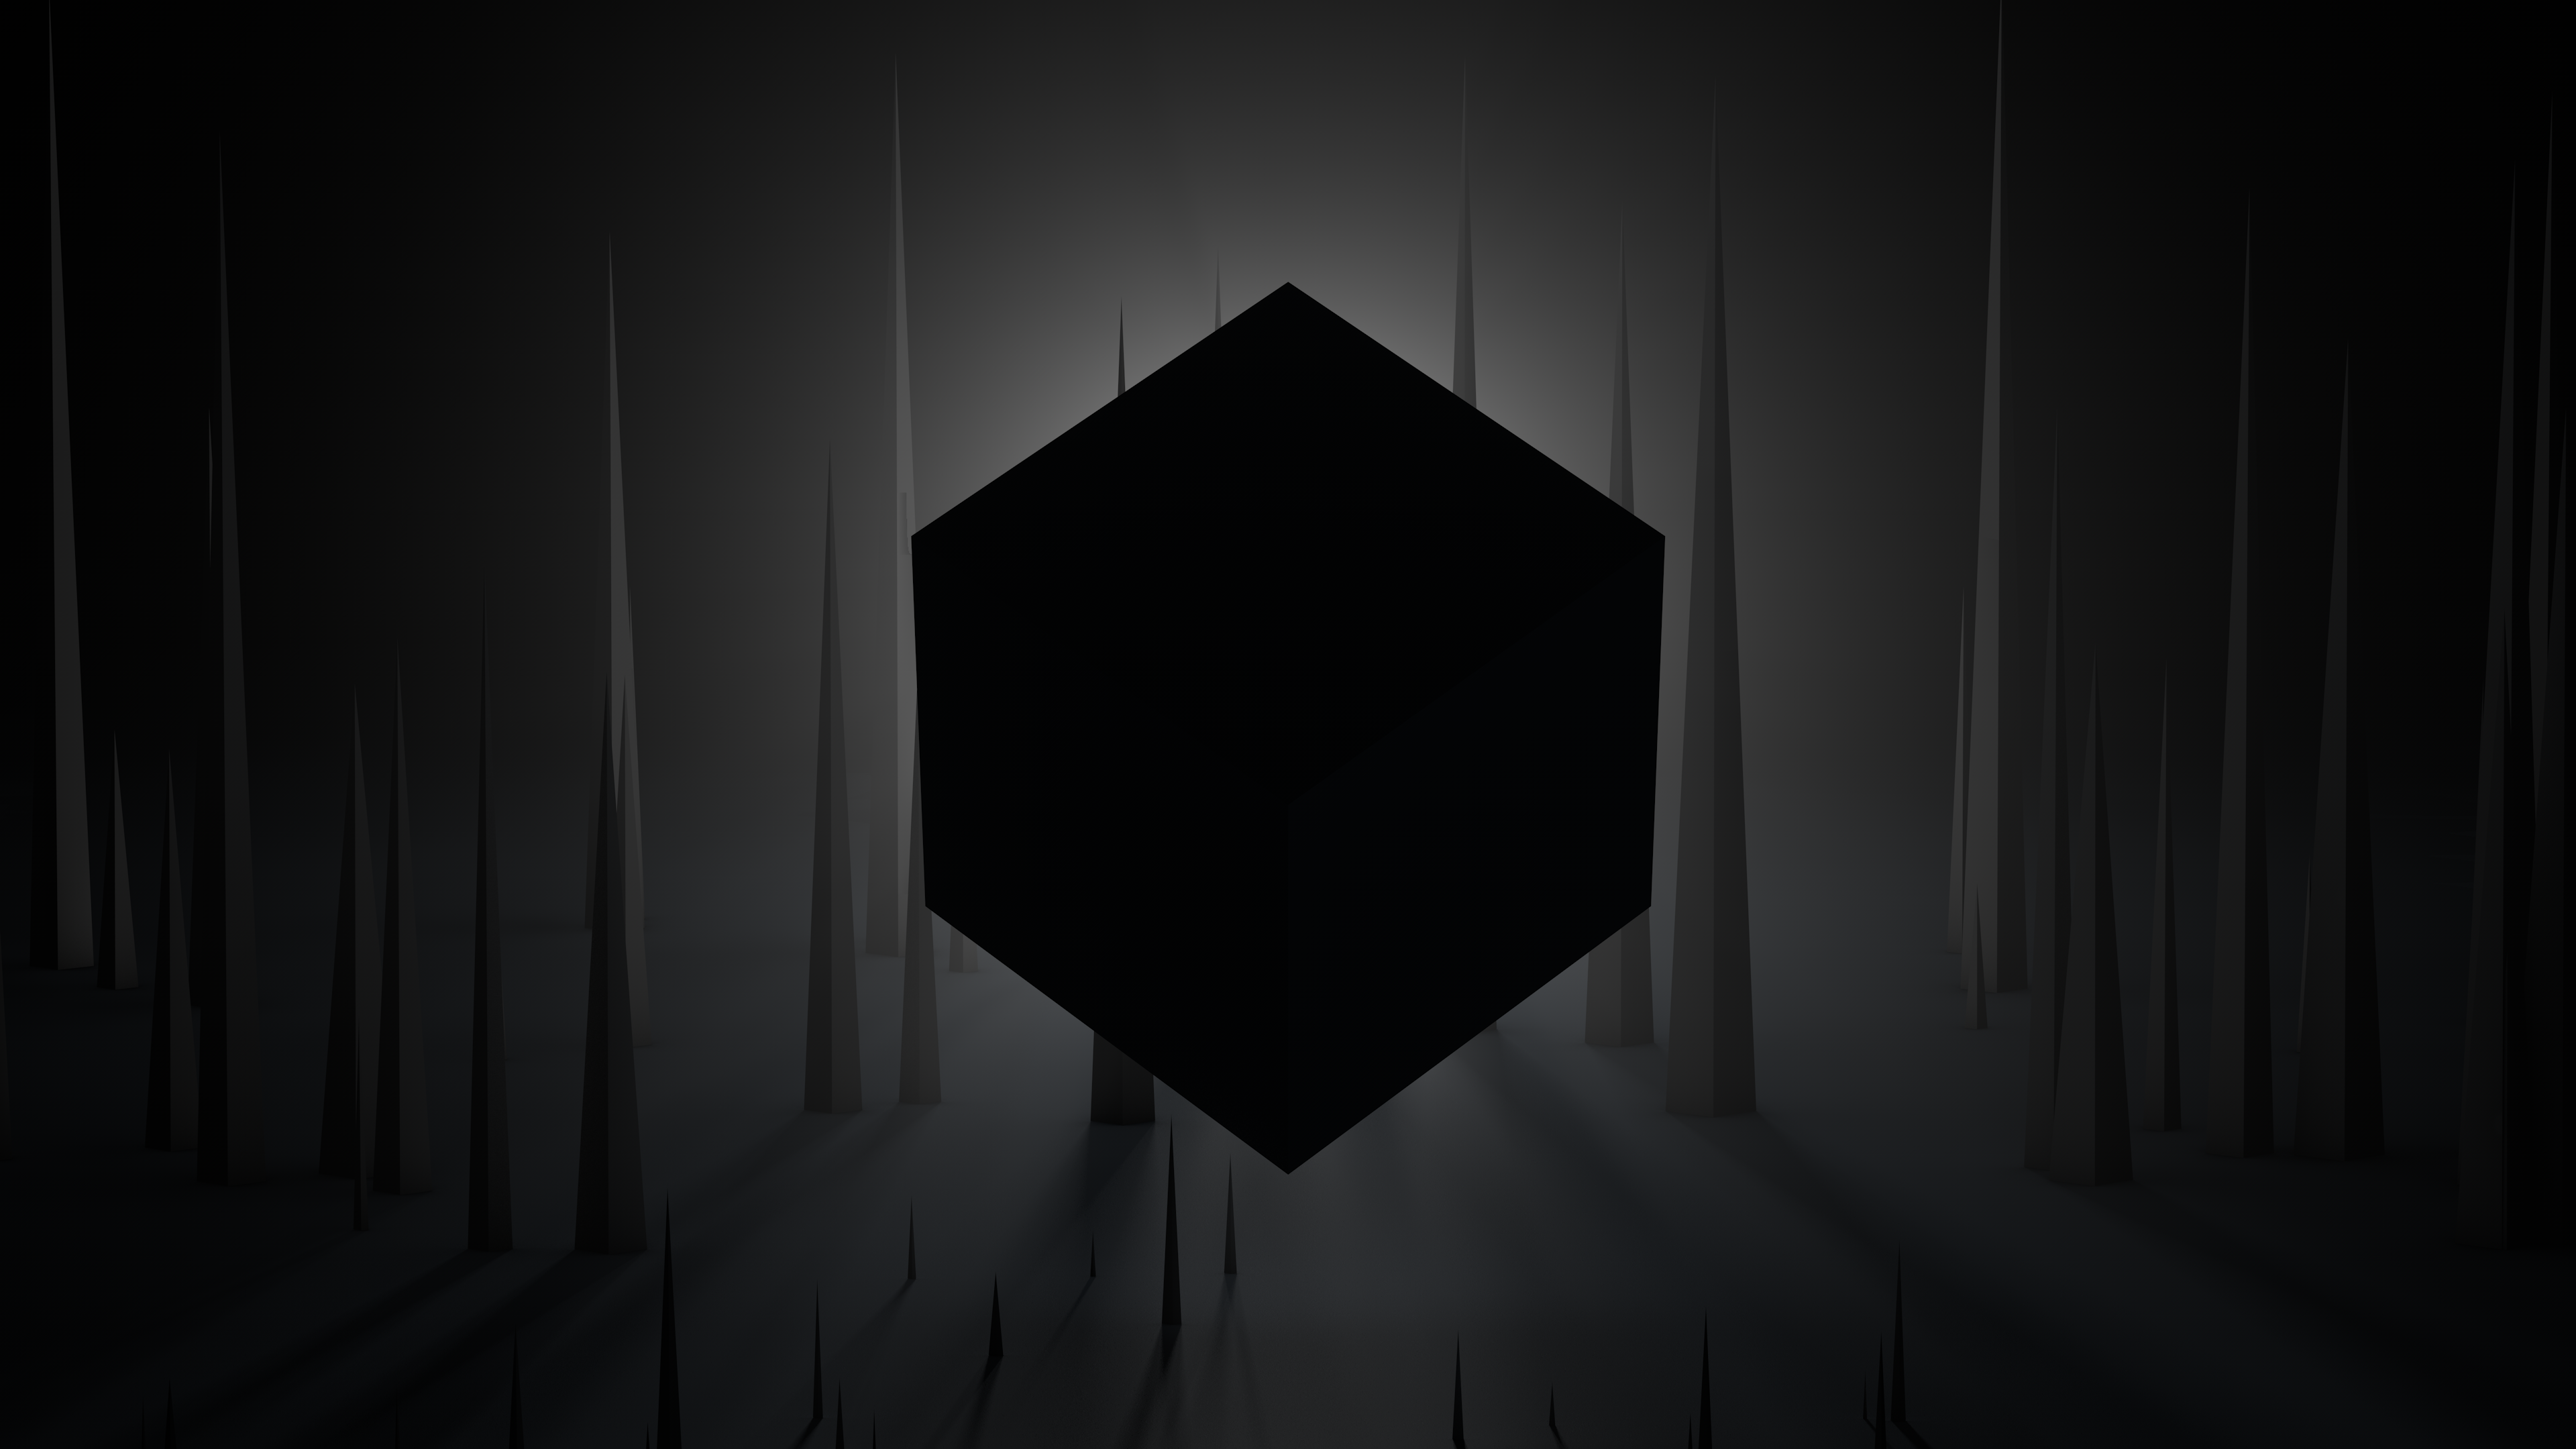 Dark Cube 4k Wallpaper